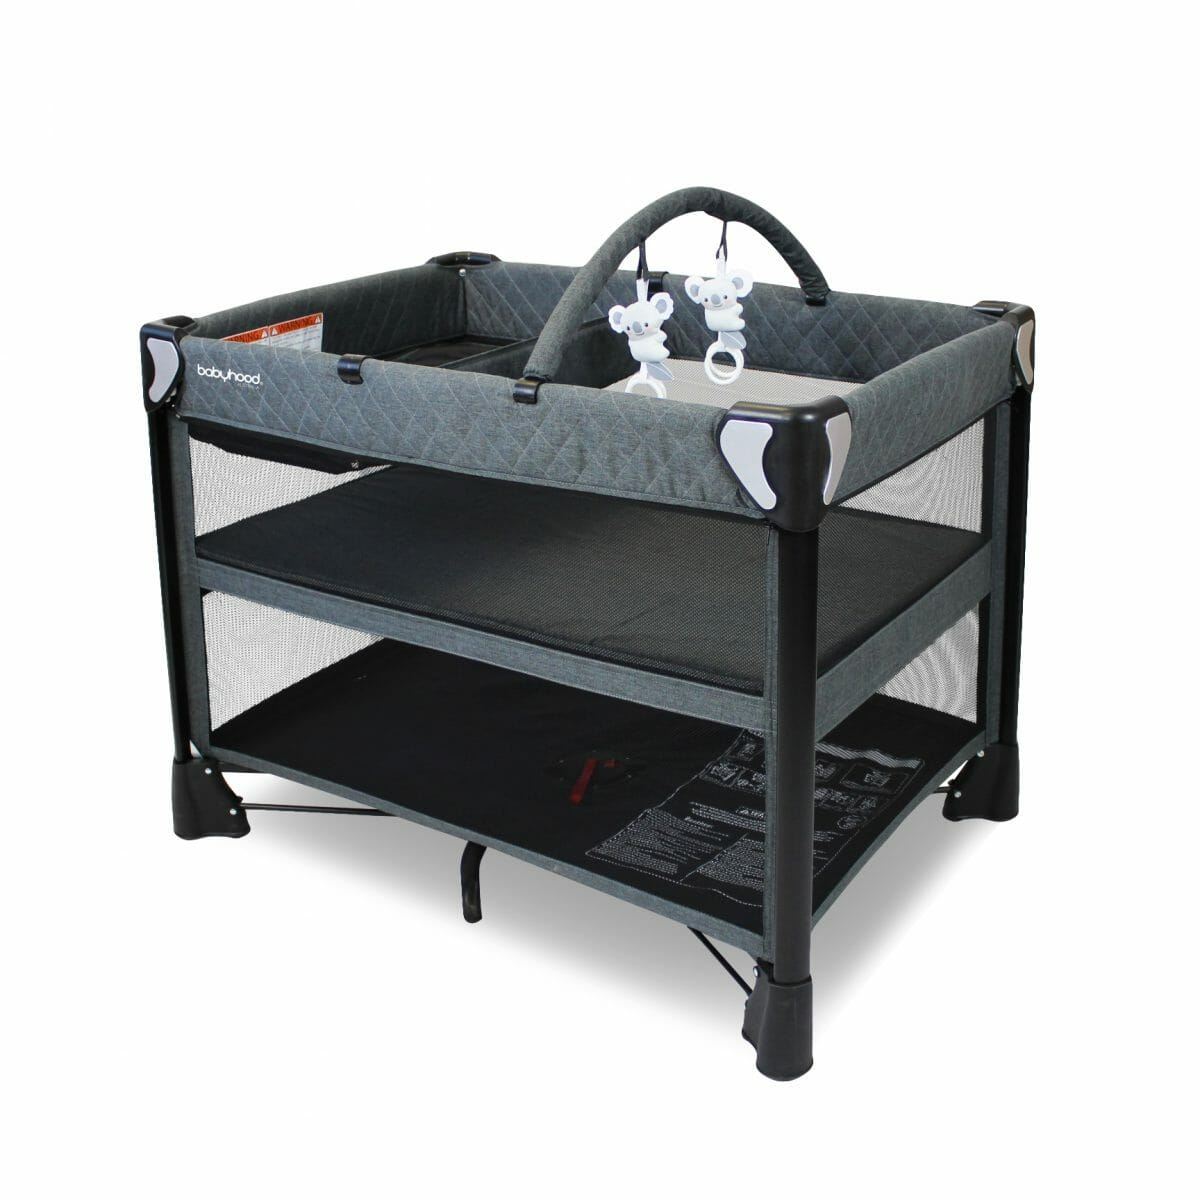 Babyhood Uno 4 In 1 Portacot Bassinet Level With Change Table And Toybar